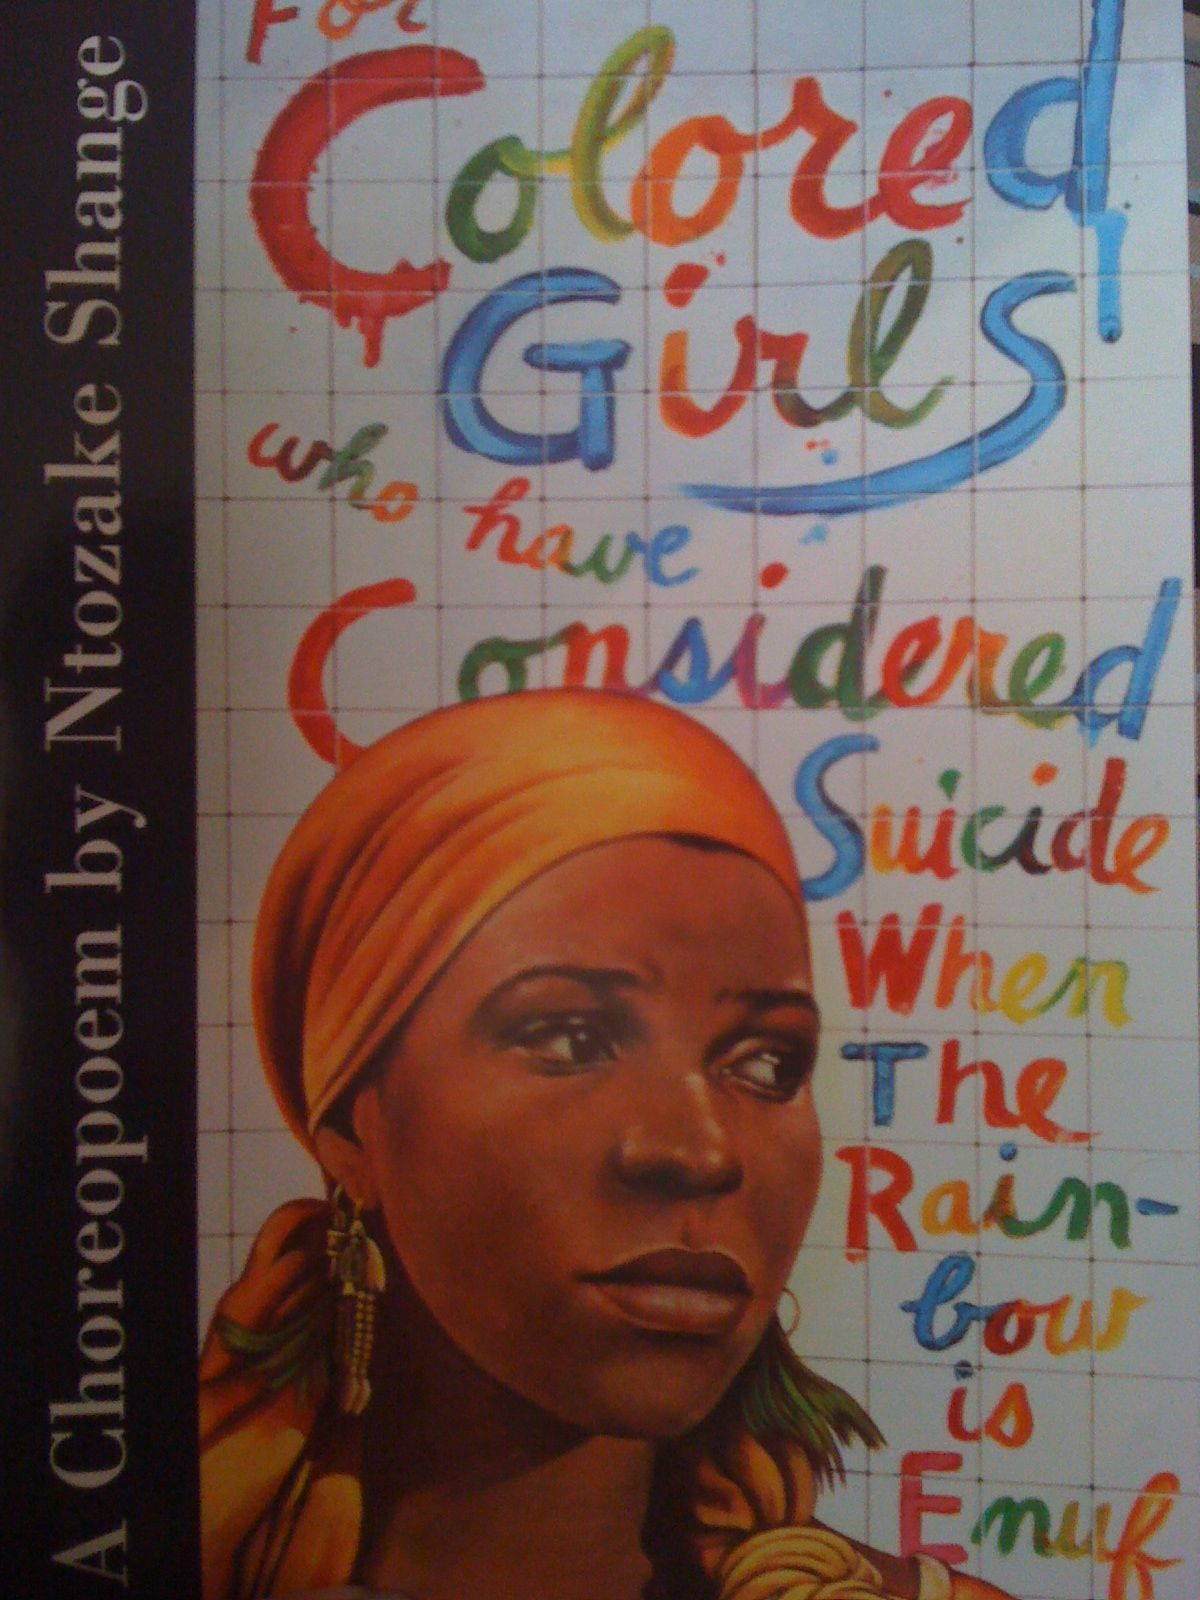 For Colored Girls Who Have Considered Suicide When the Rainbow is